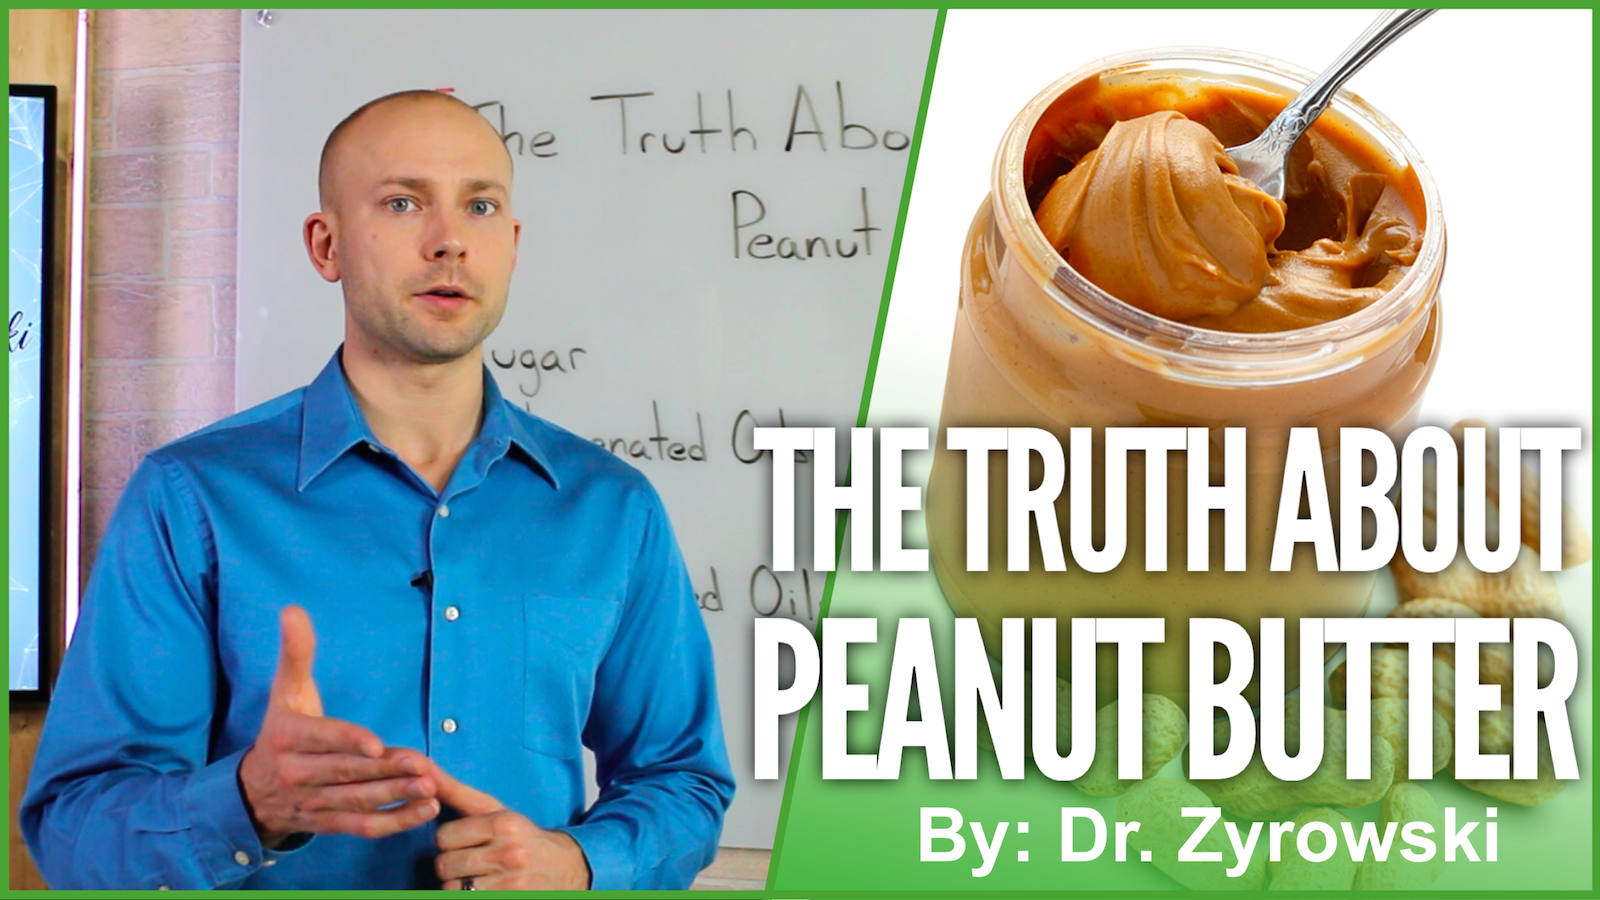 The Truth About Peanut Butter